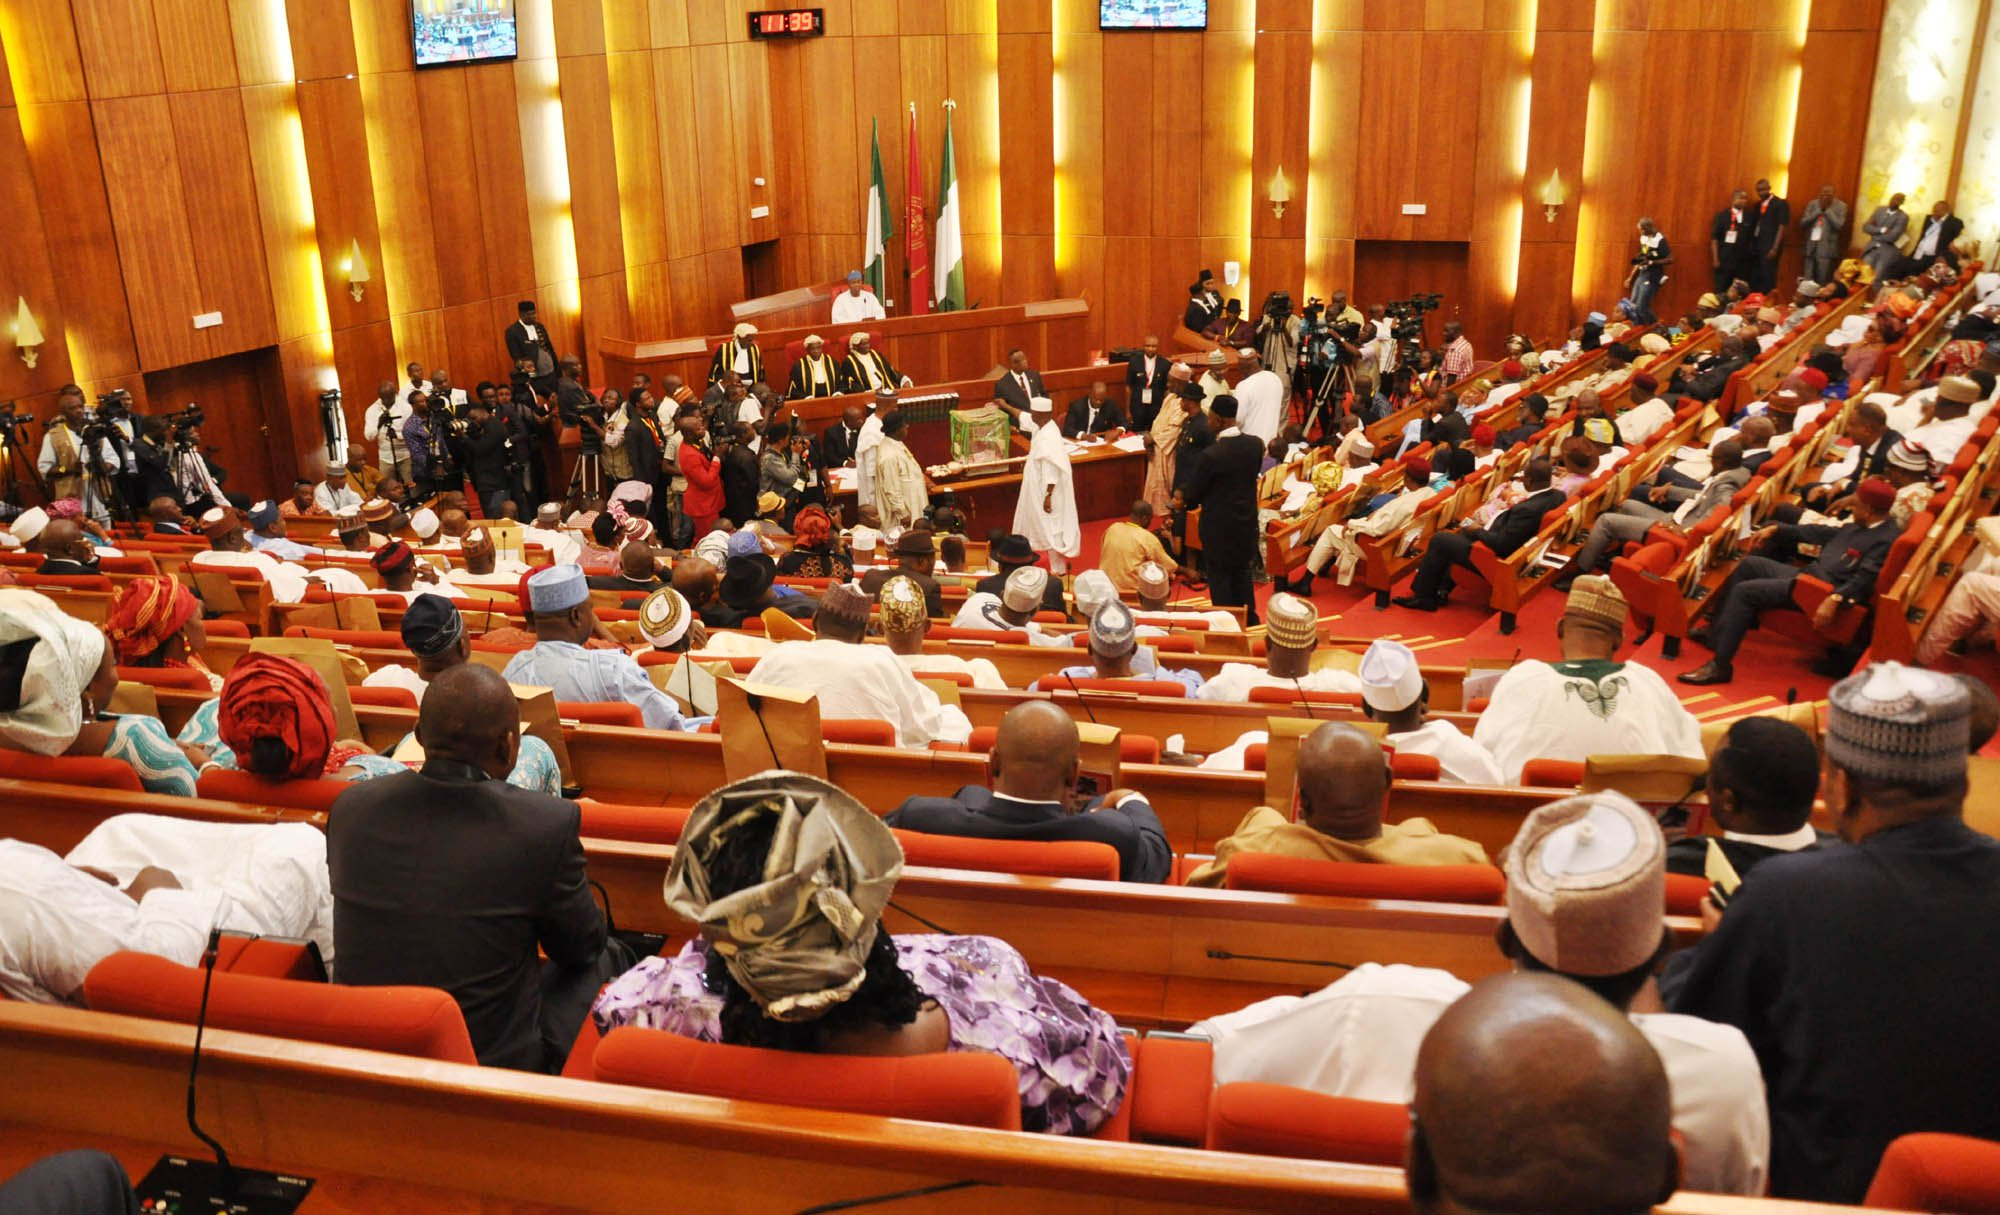 Senate to set up endowment fund for lawmakers who die in service